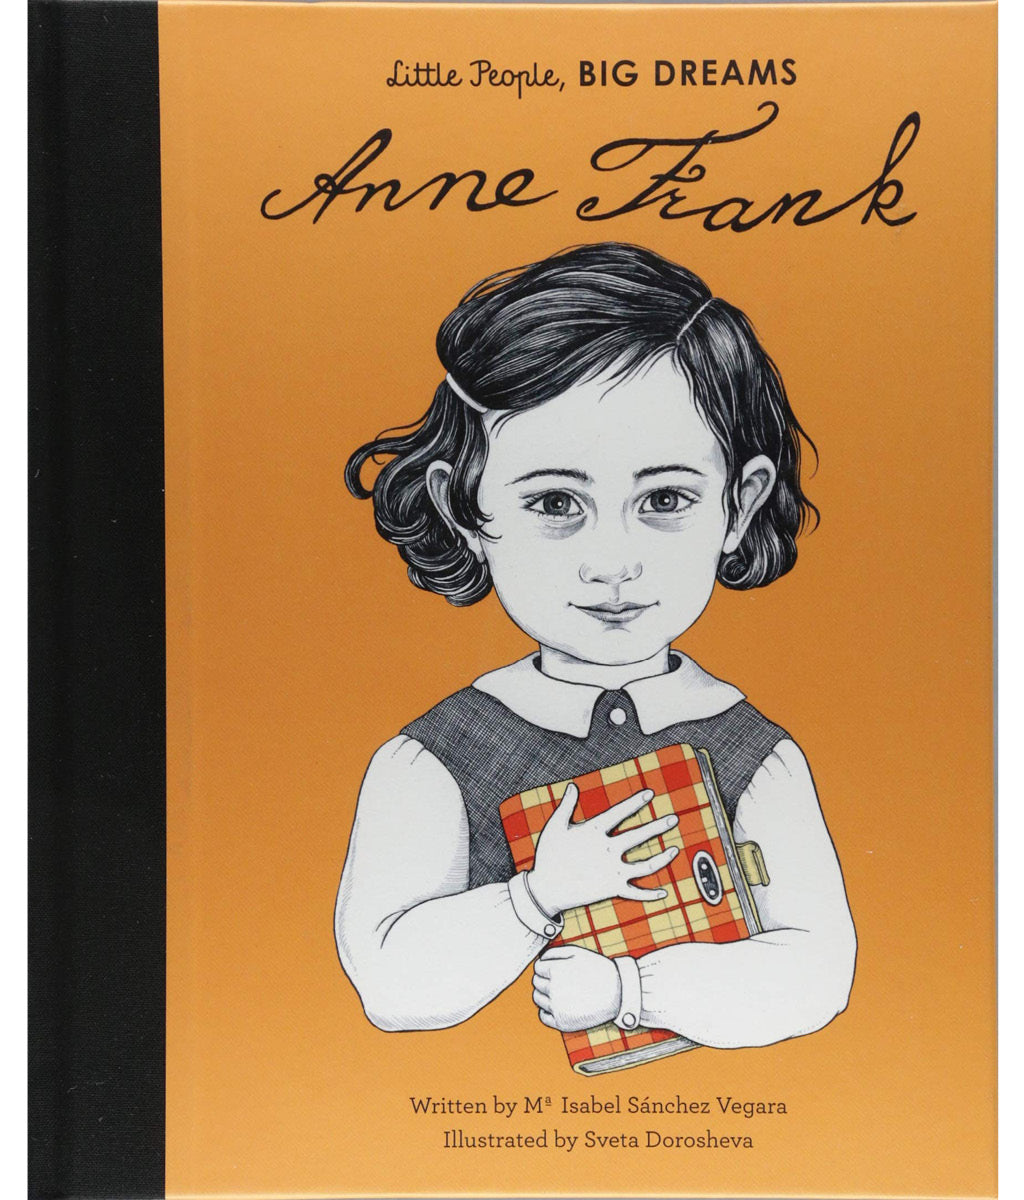 Anne Frank by Maria Isabel Sanchez Vegara